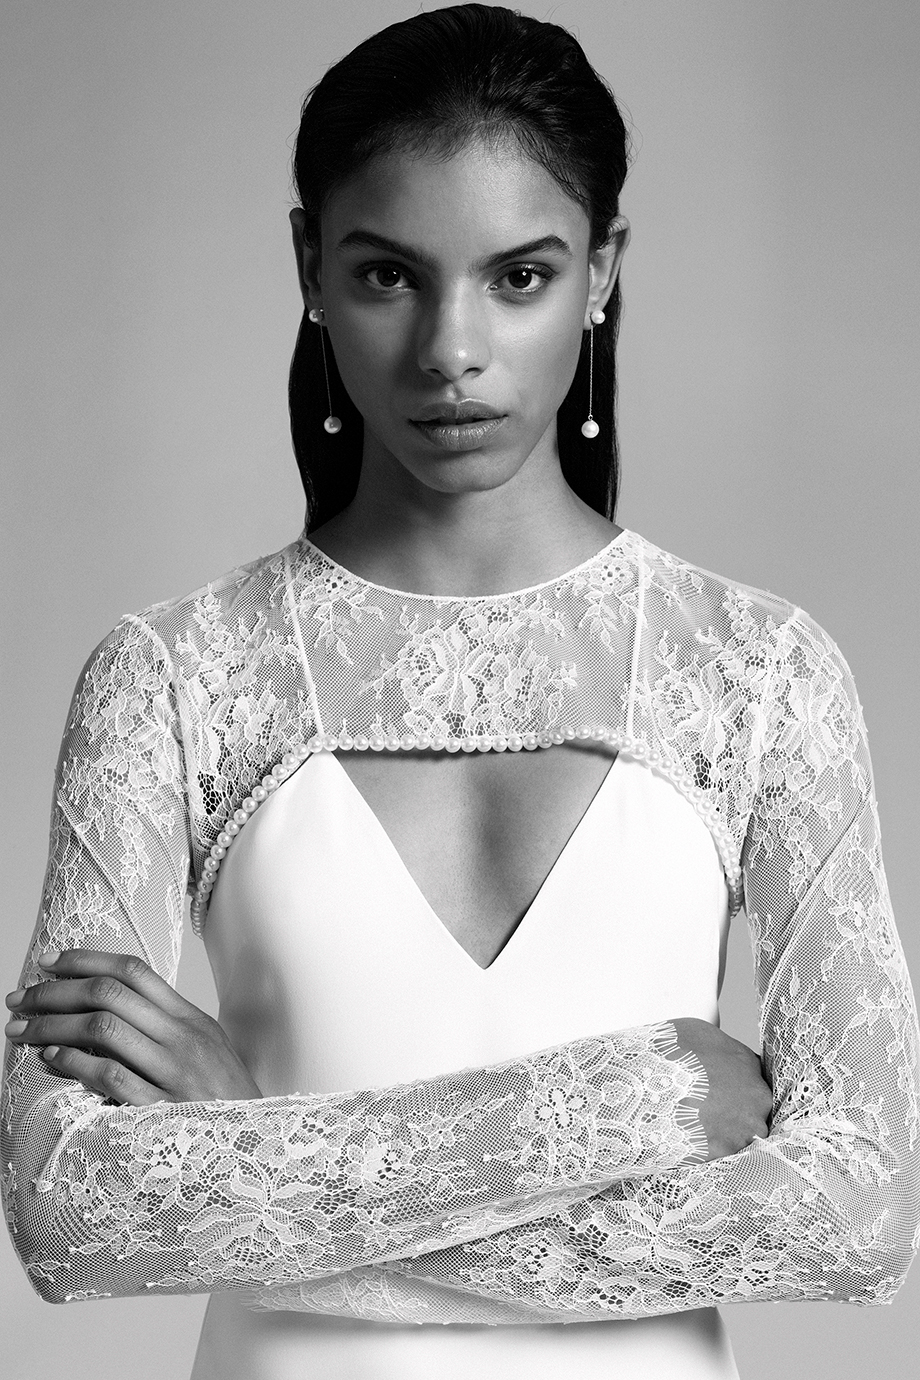 CUSHNIE - CUSHNIE is a luxury women's ready-to-wear and accessories brand designed by Carly Cushnie.https://www.cushnie.com/collections/bridal-2019